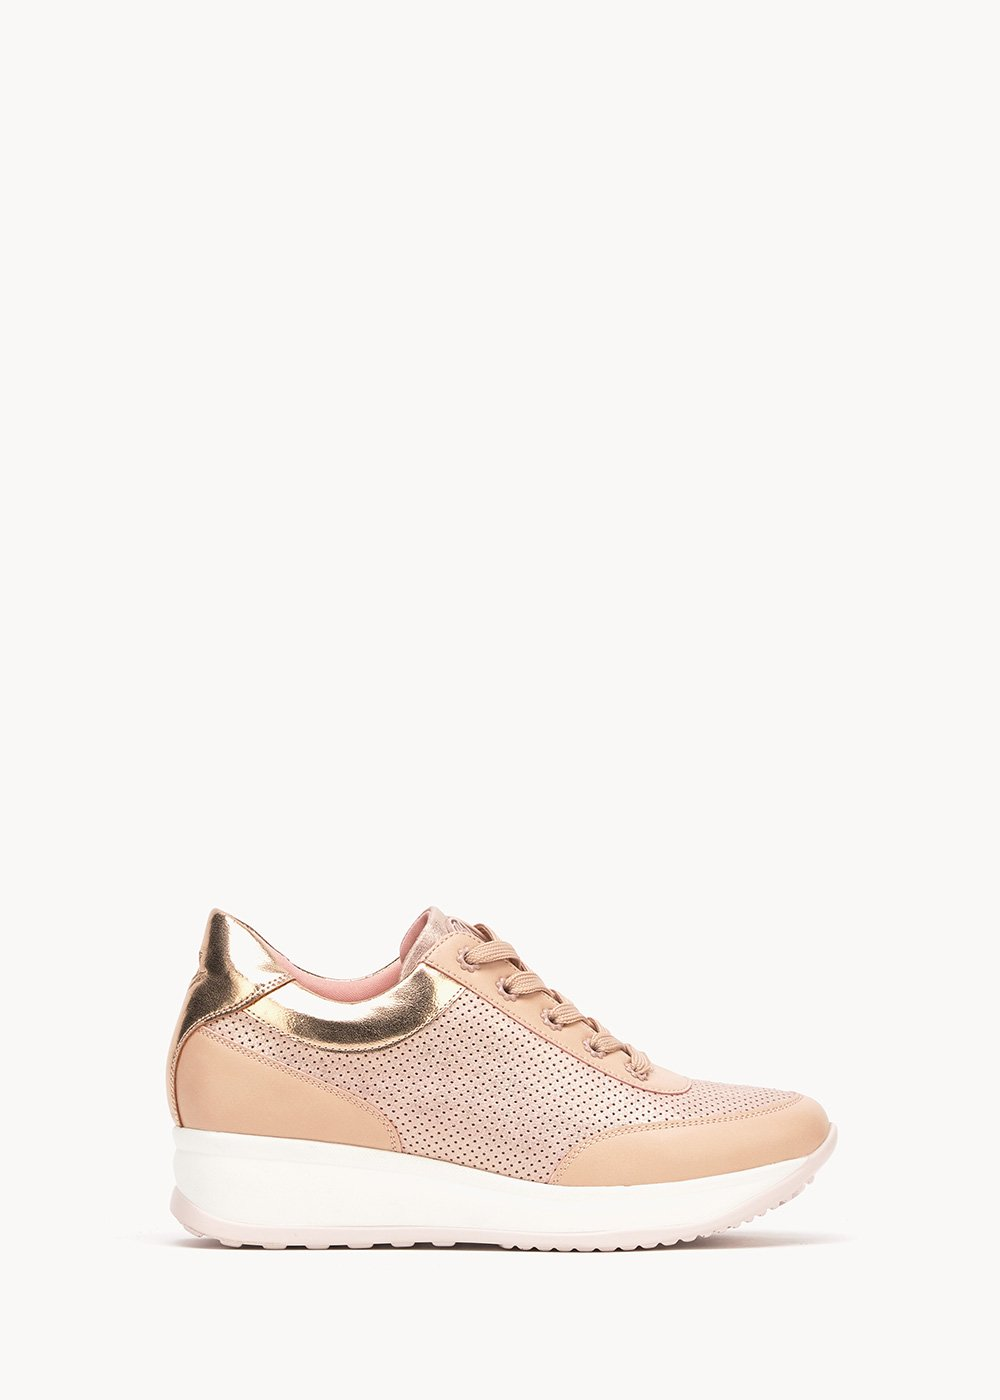 Shirl rose-coloured sneakers - Pink - Woman